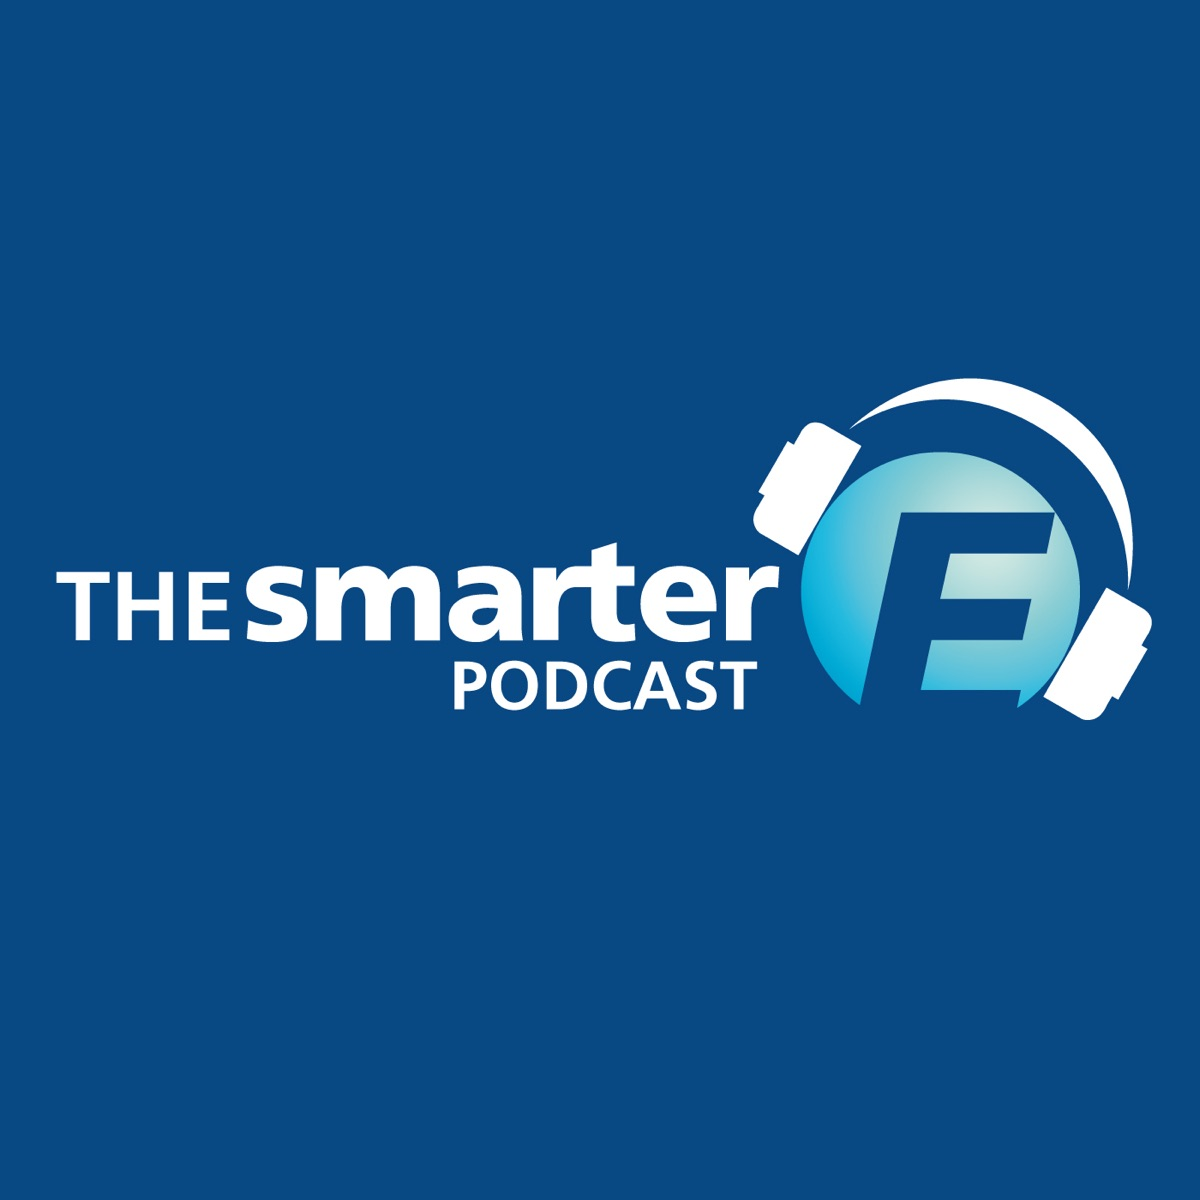 The smarter E Podcast